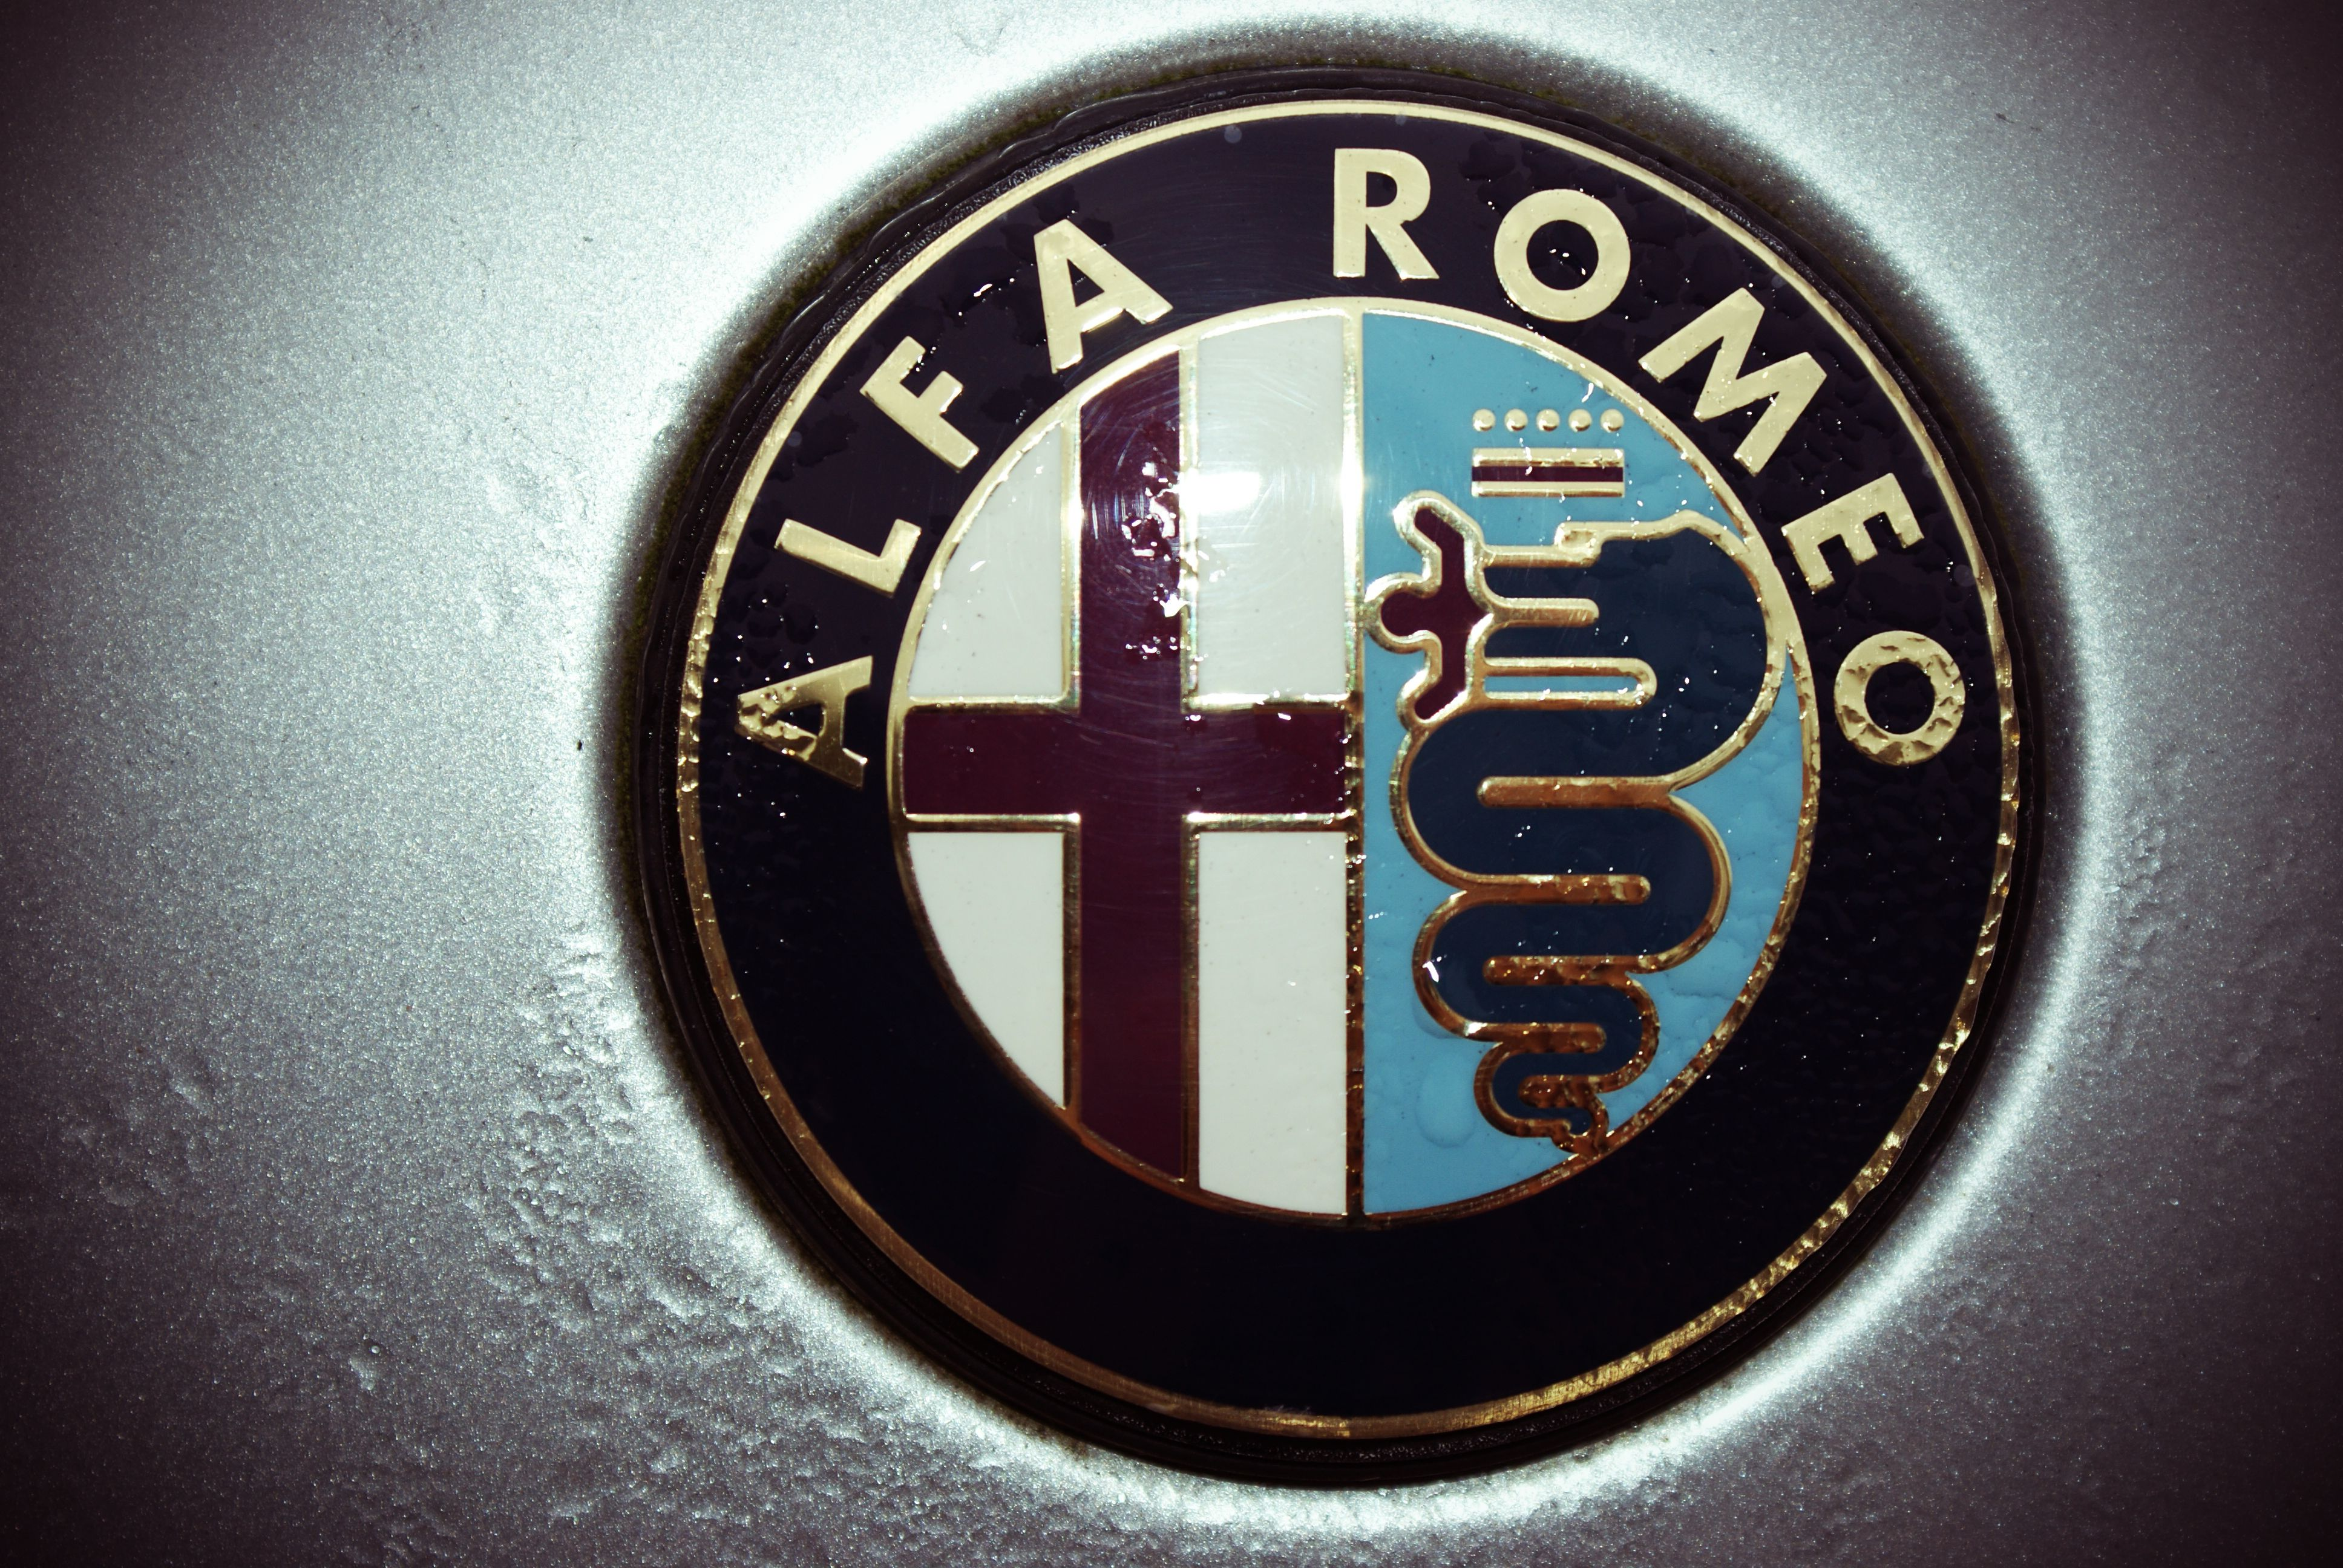 Alfa Romeo Wallpapers Logo Backgrounds With Live Hd Image Of PC